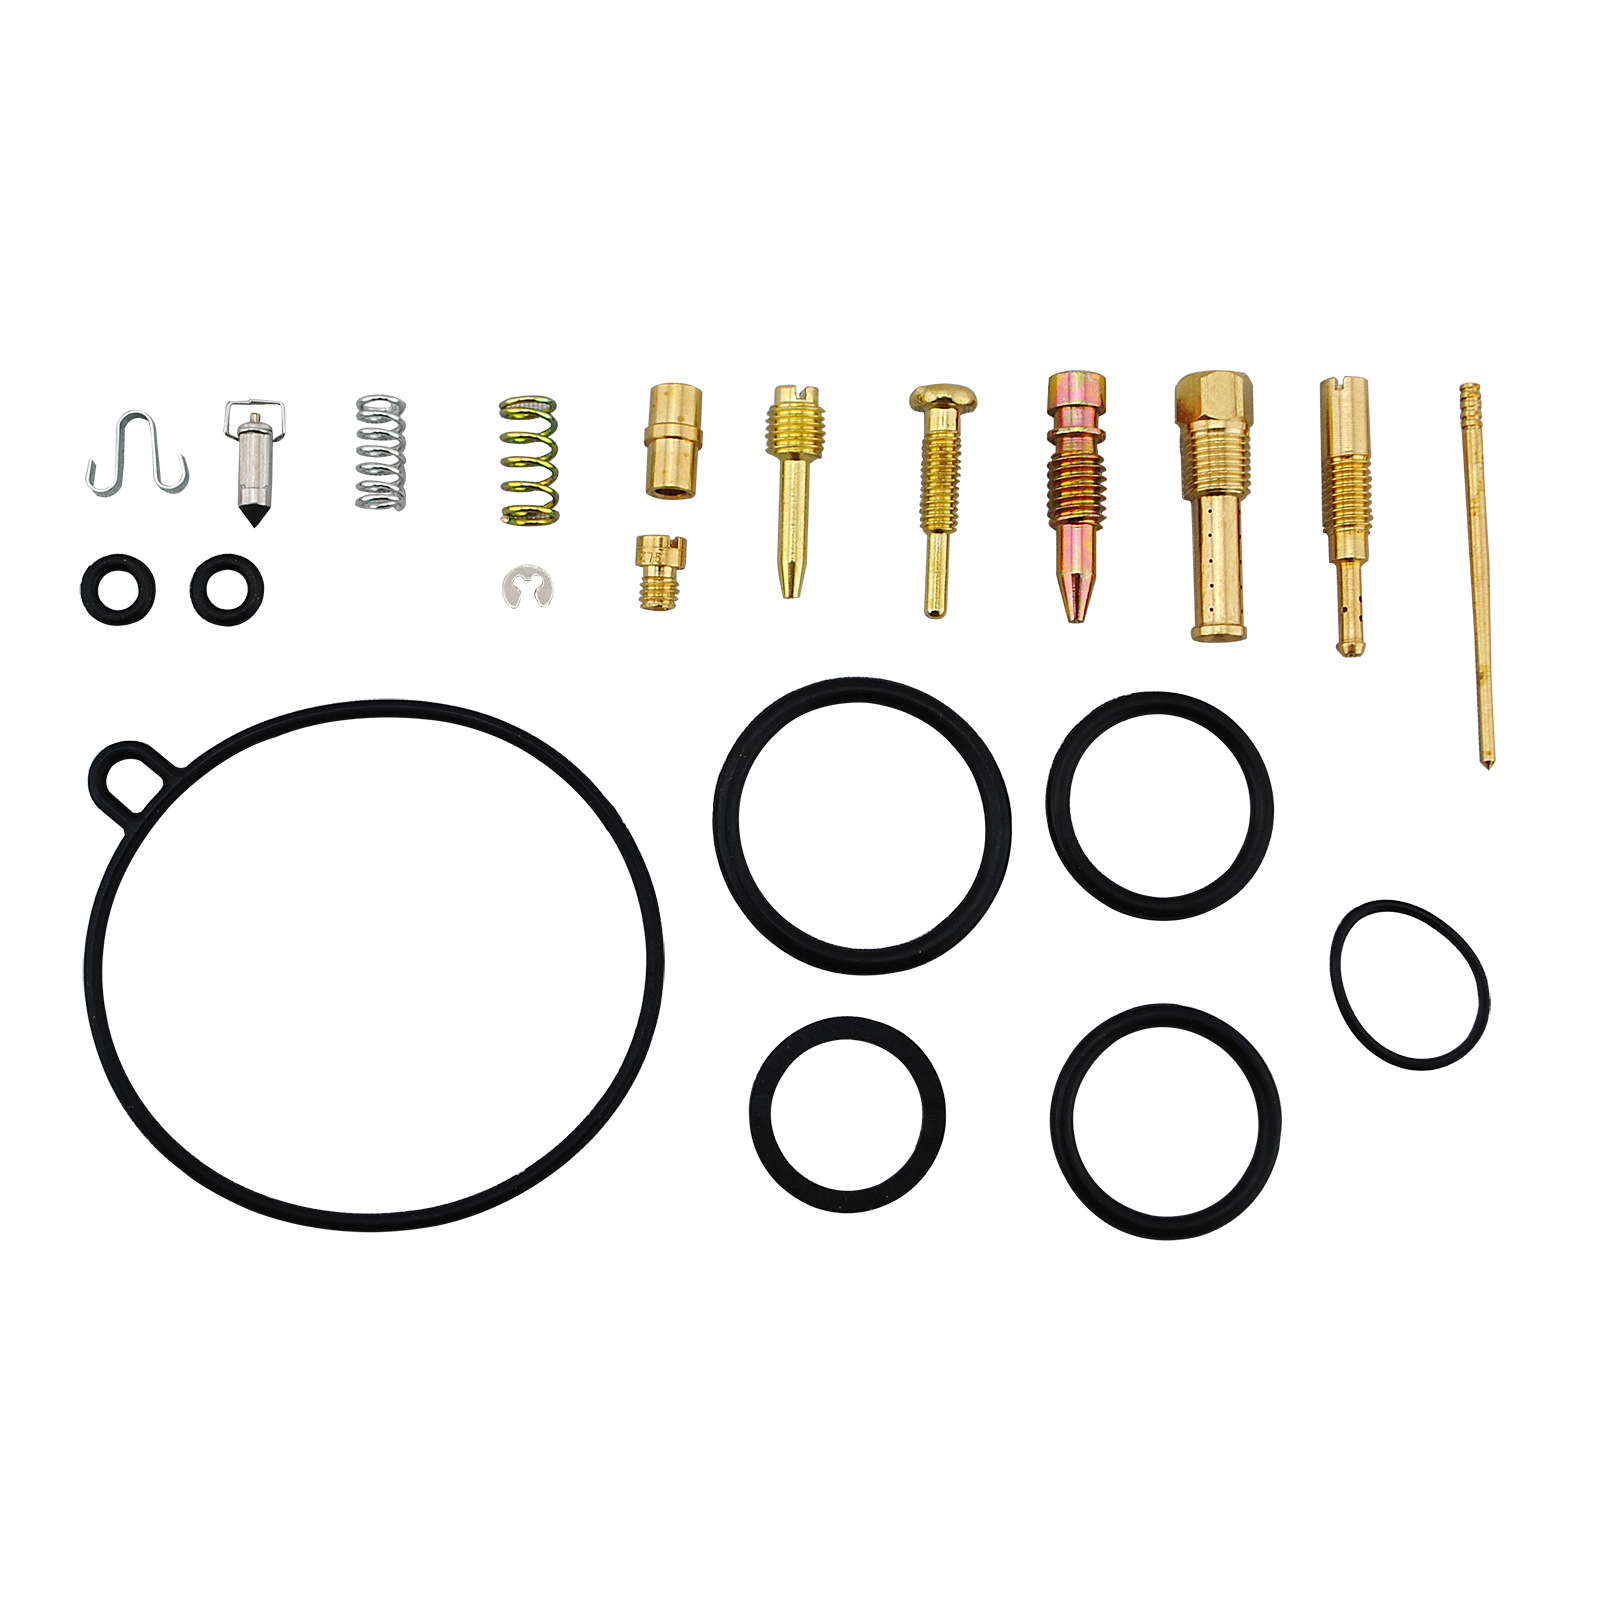 Honda Carburetor Carby Rebuild Kit CT110 Postie Posty Bike